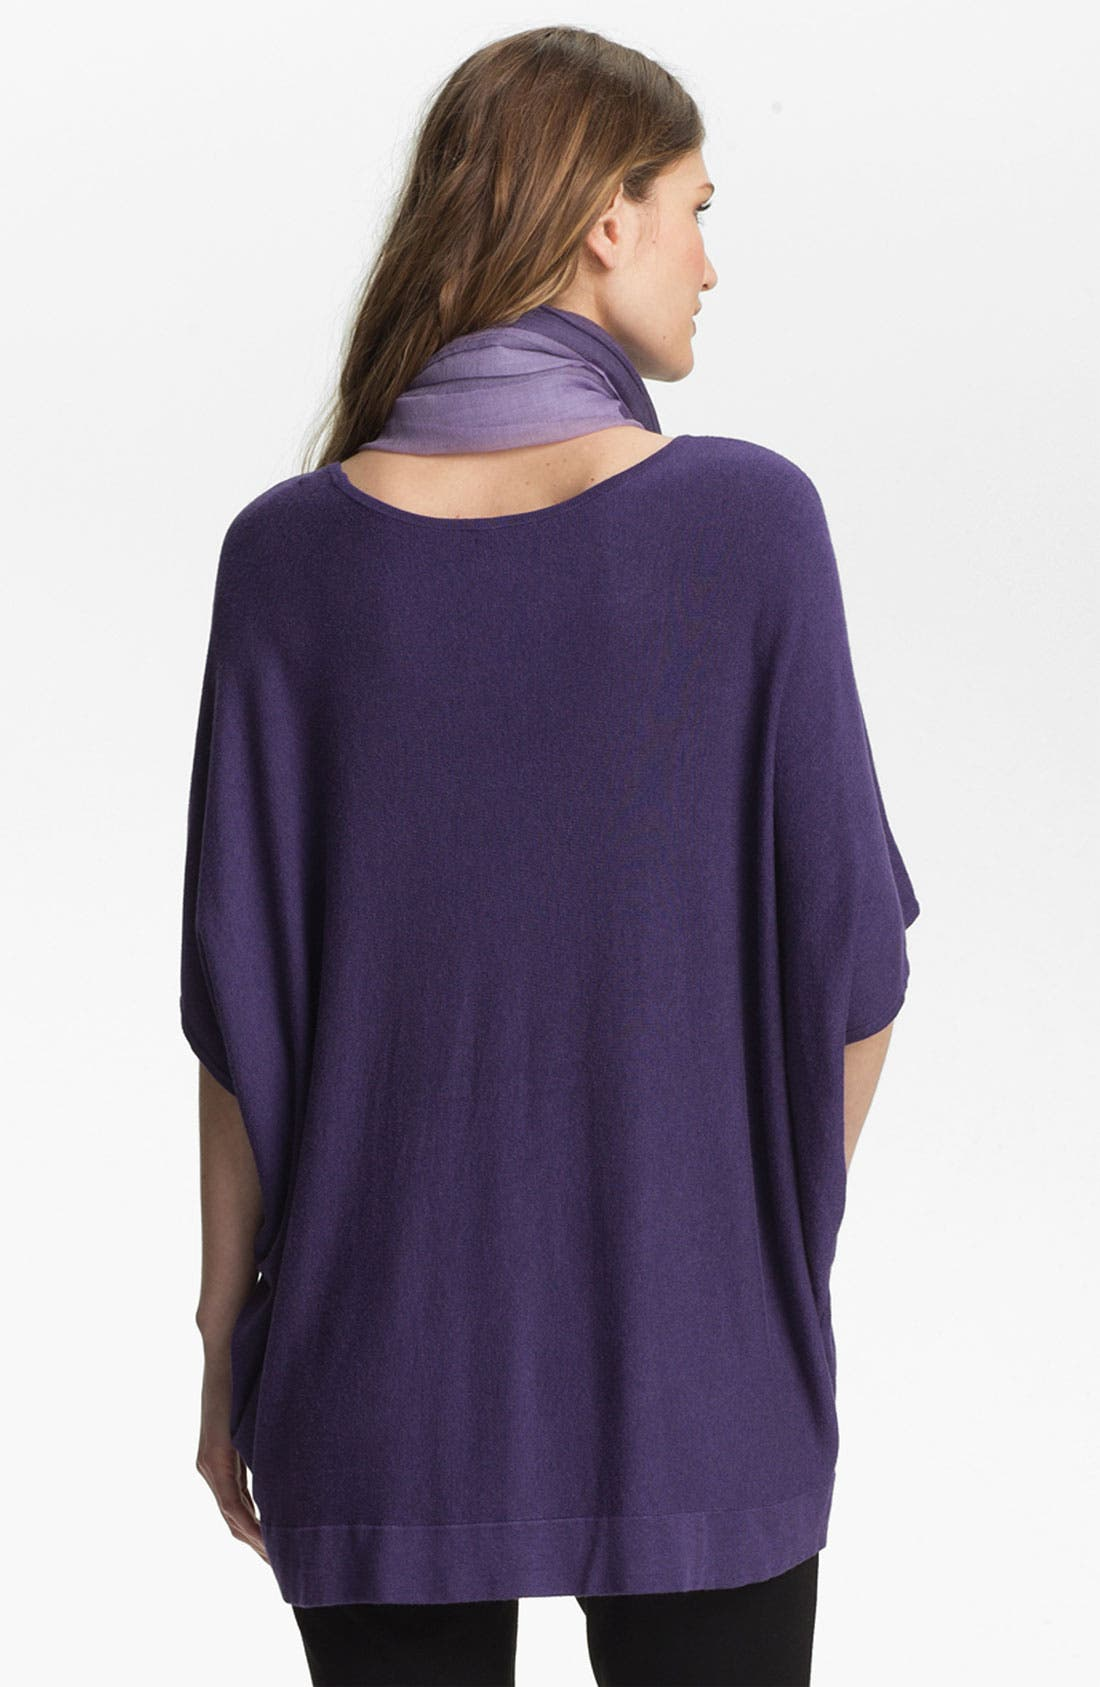 Alternate Image 2  - Eileen Fisher Bateau Neck Boxy Knit Top (Online Exclusive)